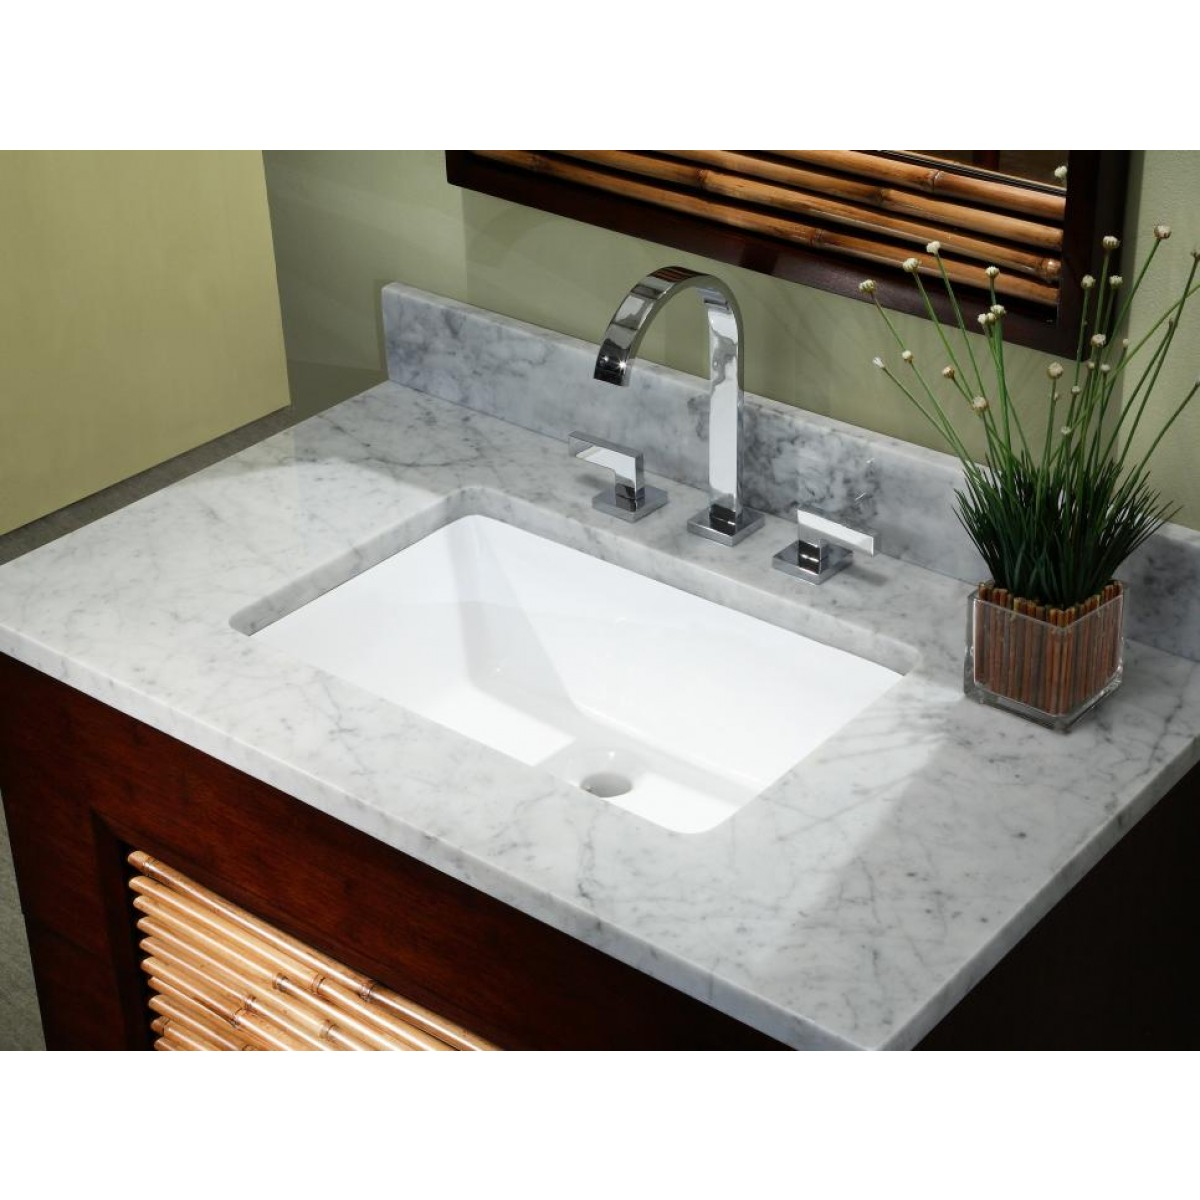 Rectangular White Biscuit Porcelain Ceramic Vanity Undermount Bathroom Vessel Sink 20 3 4 X